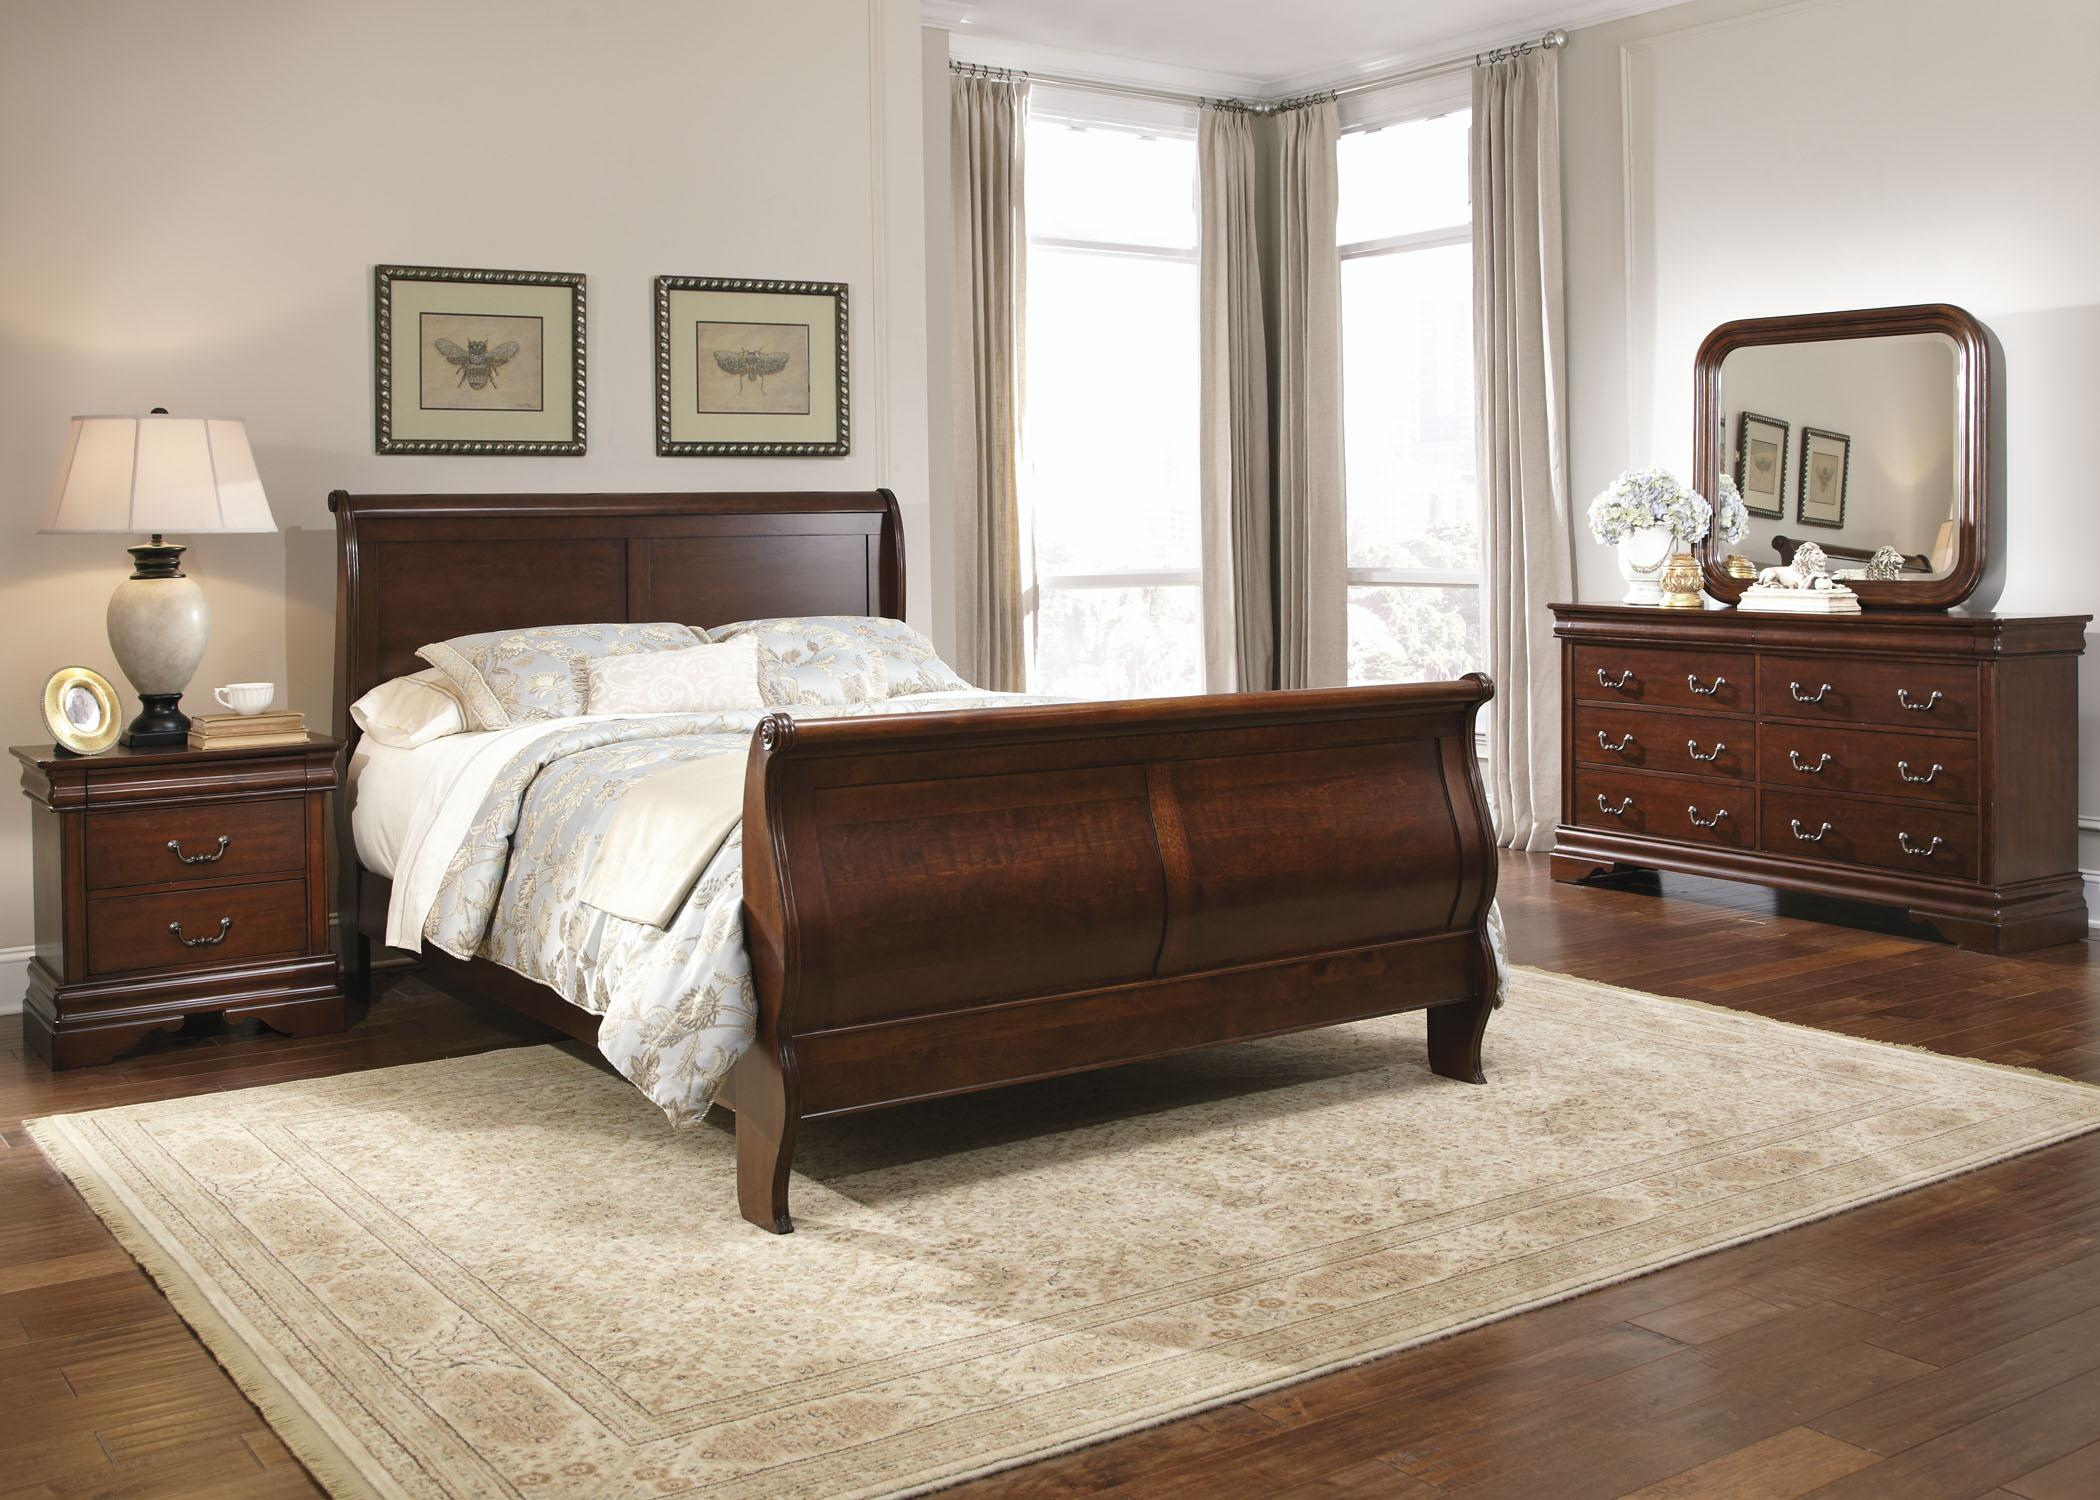 Liberty Furniture Carriage Court Twin Sleigh Bed, Dresser & Mirror - Item Number: 709-YBR-GP132